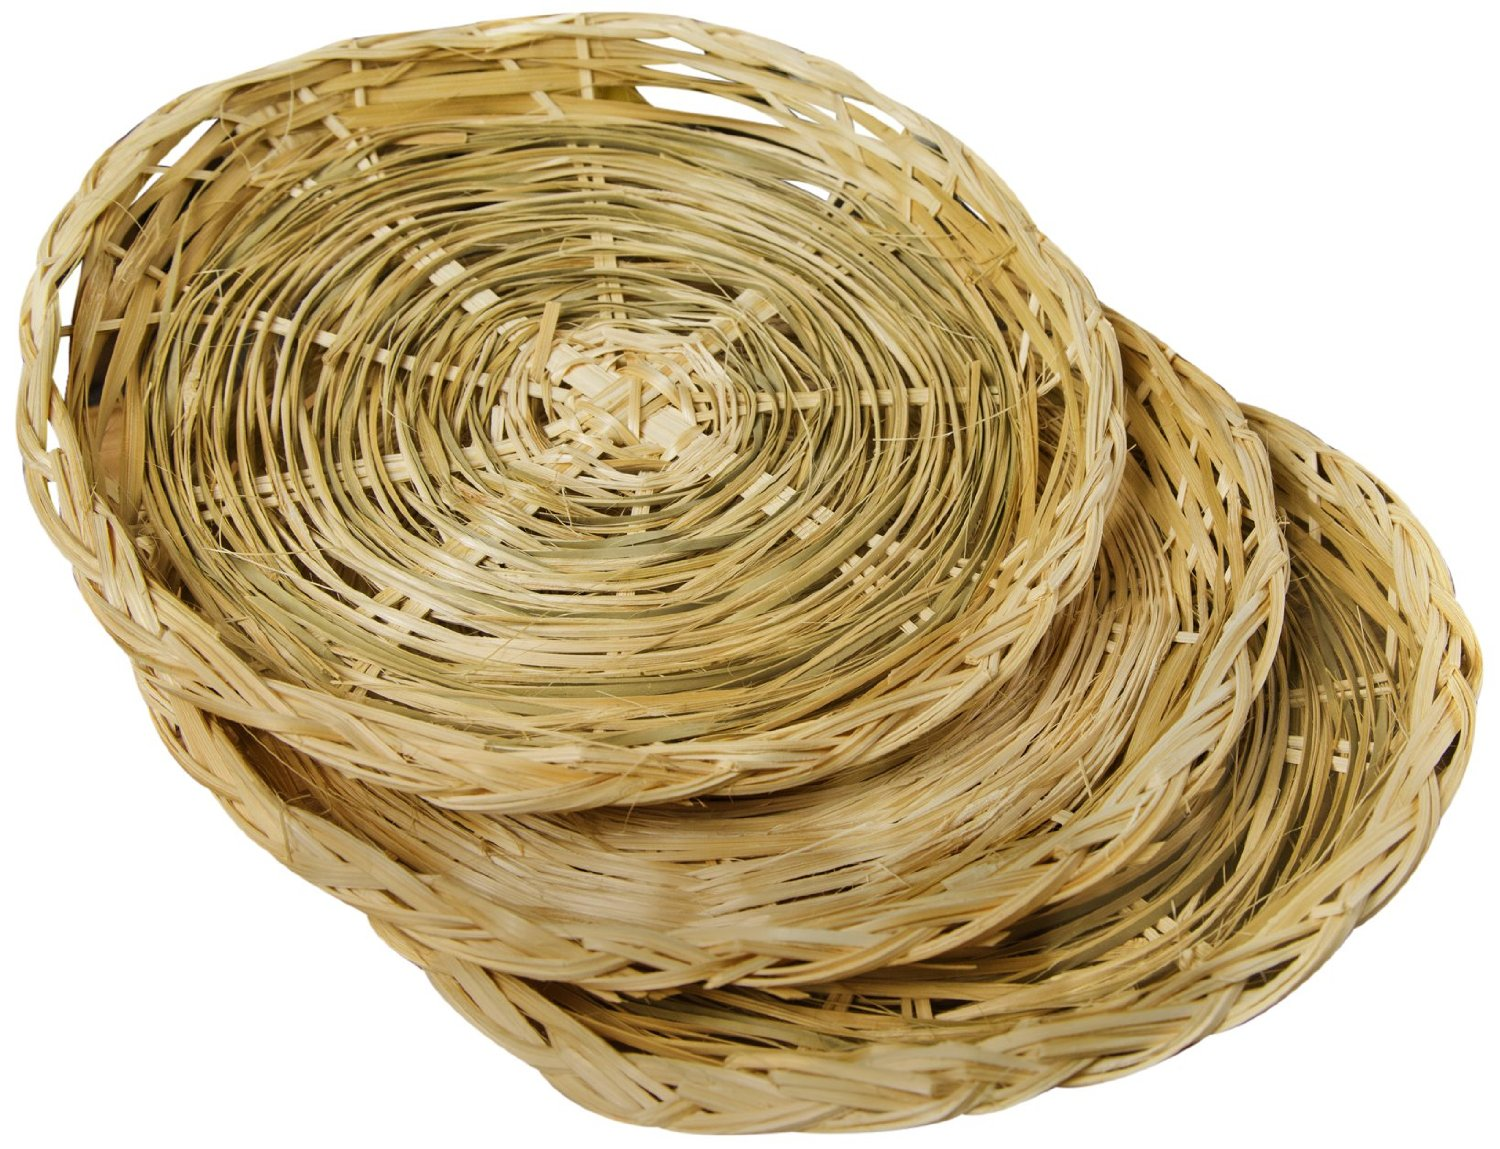 "Fox Run 9"" Paper Plate Holders Support Set Of 4 Woven Rattan Basket Picnic New by Fox Run"